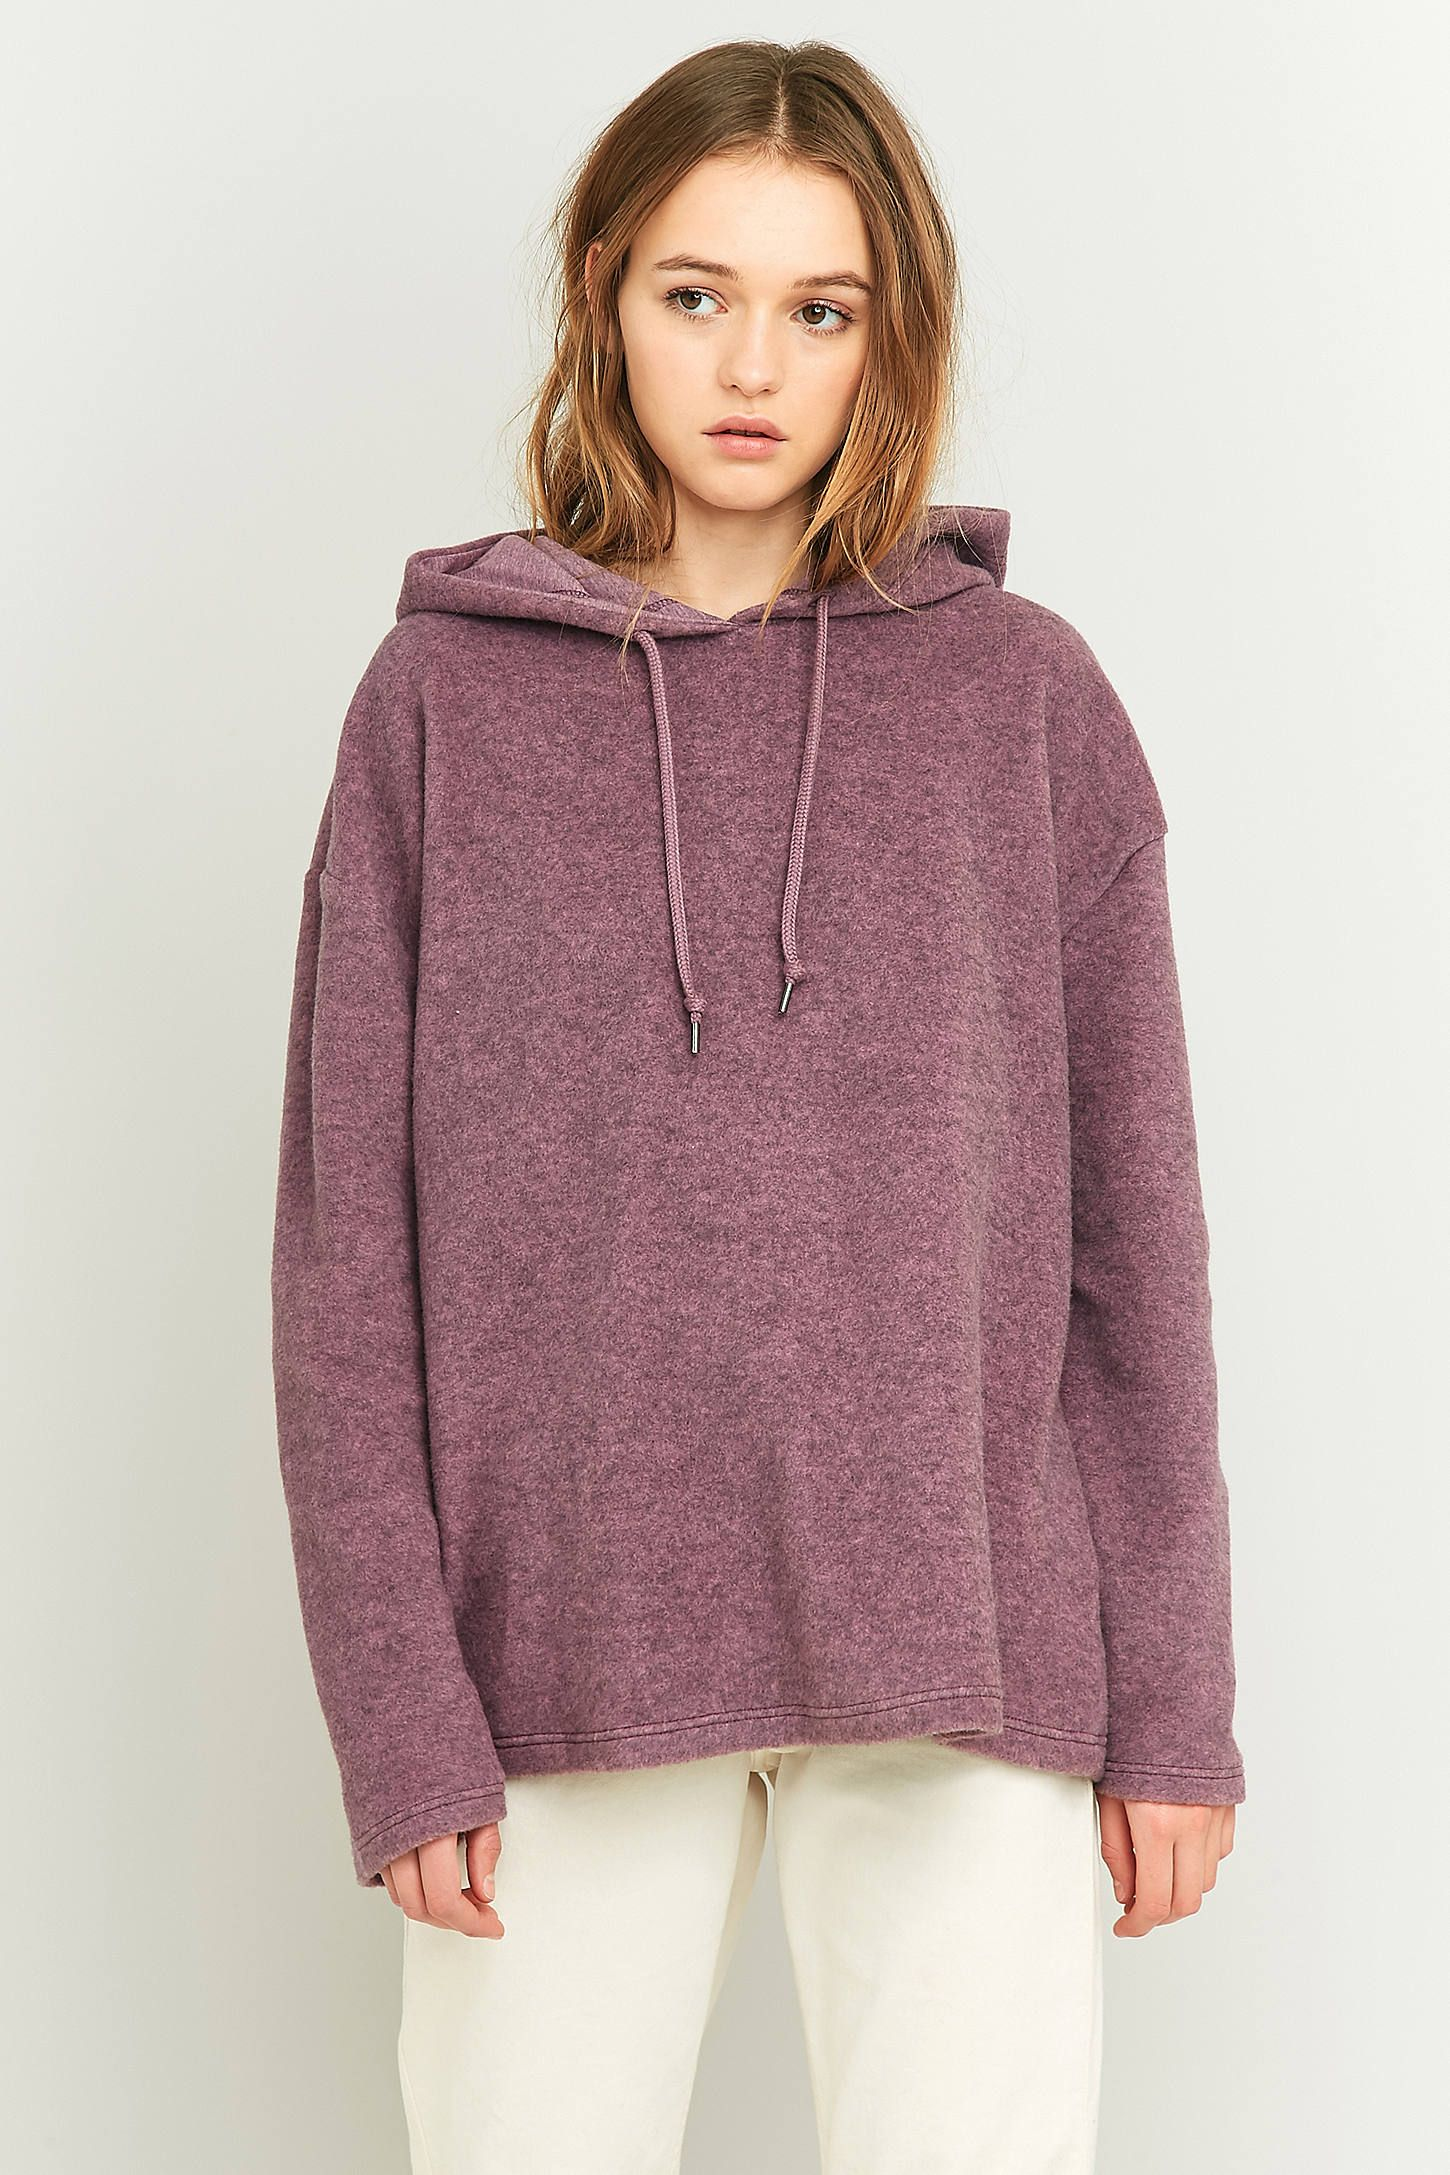 BDG Fluffy Pullover Hoodie | Pullover, Latest styles and Hoodie